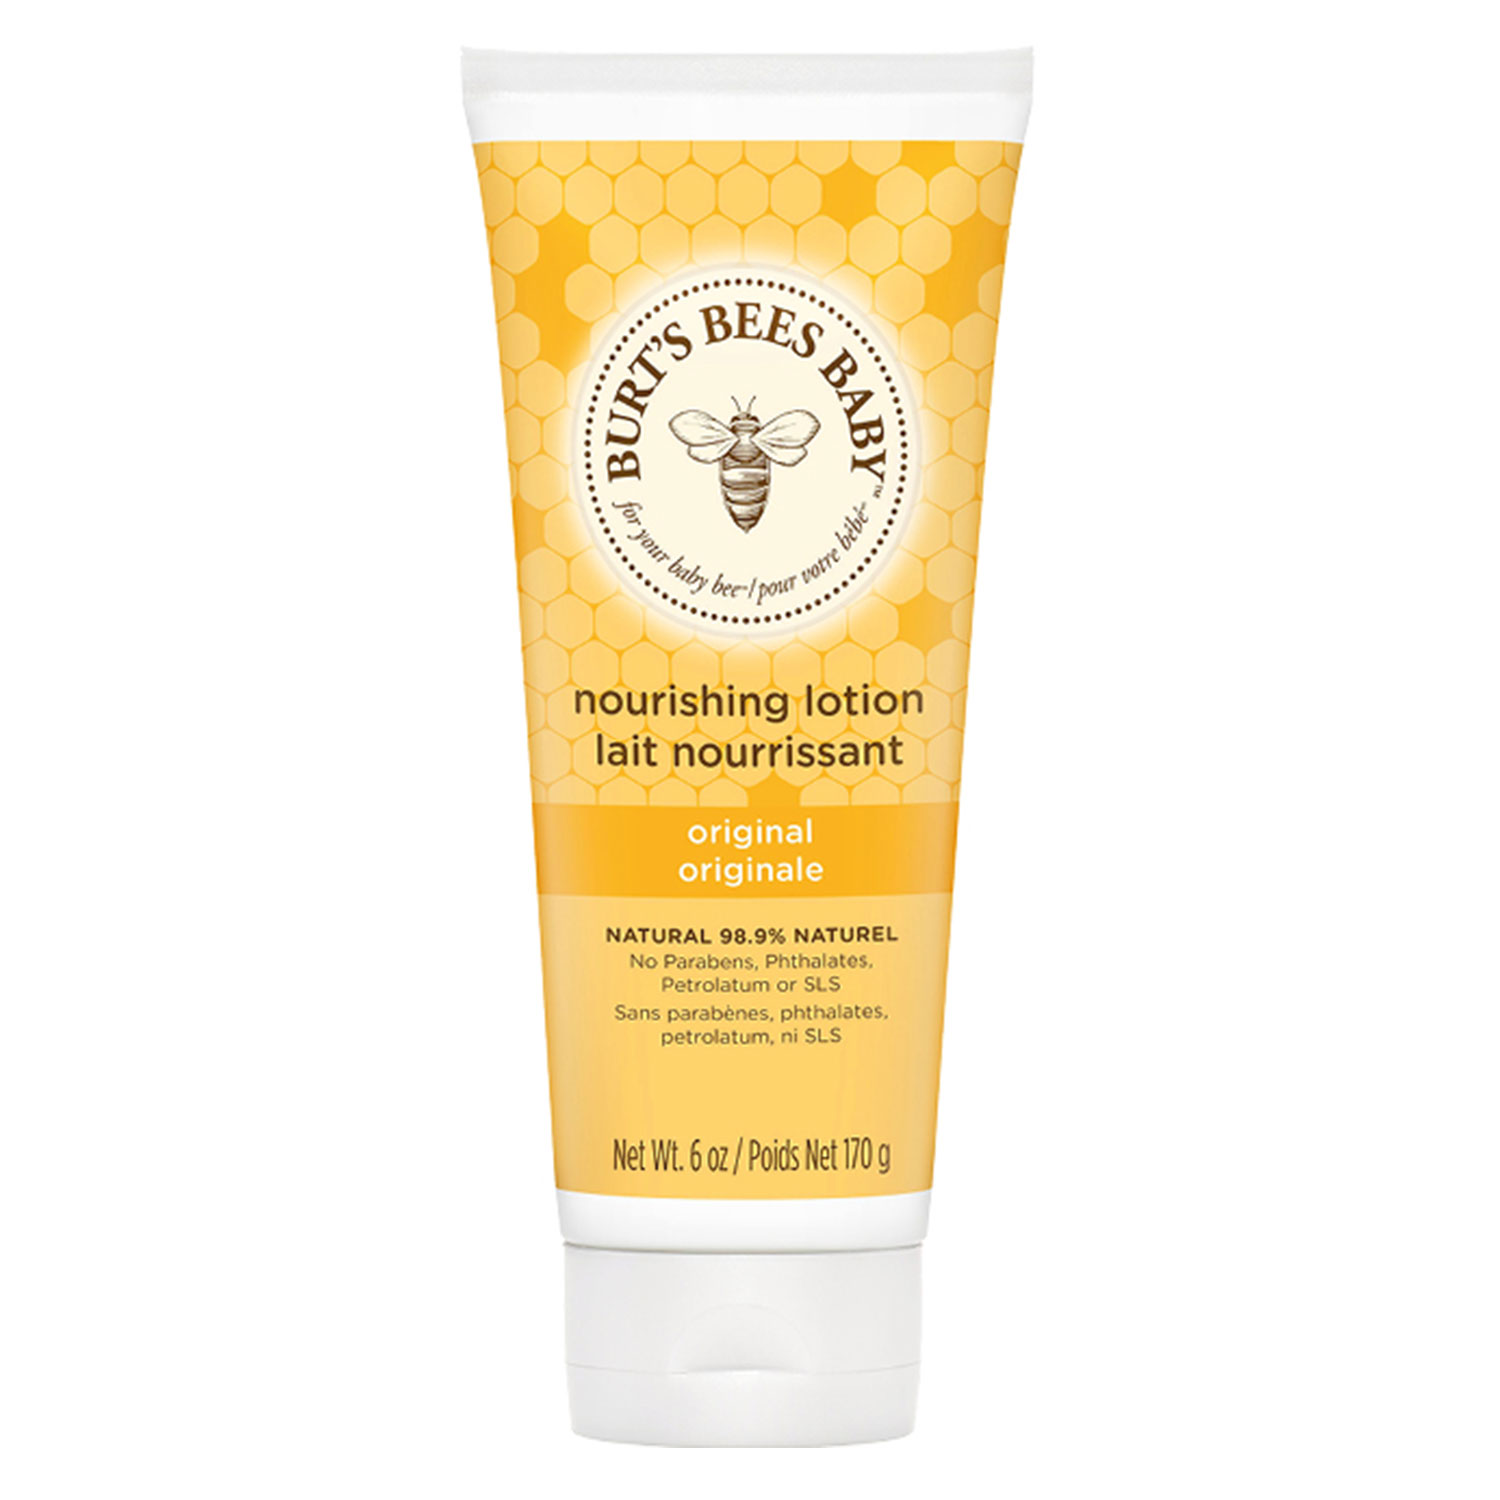 Baby Bee - Original Lotion